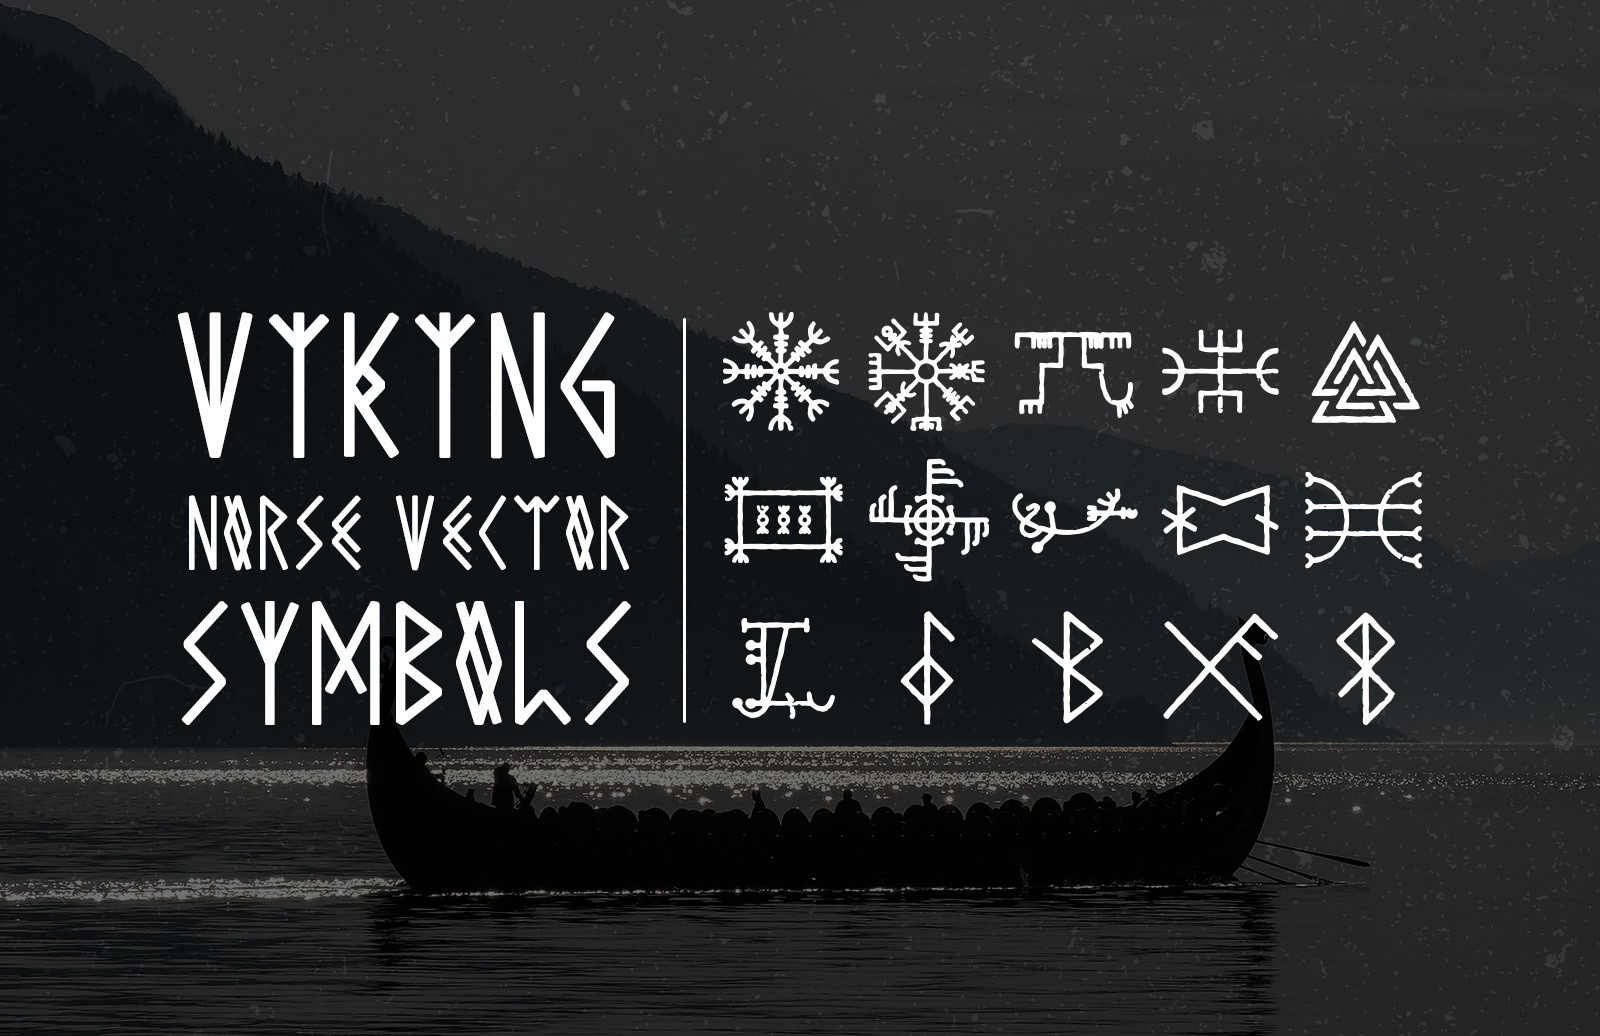 Viking Norse Vector Symbols Preview 1